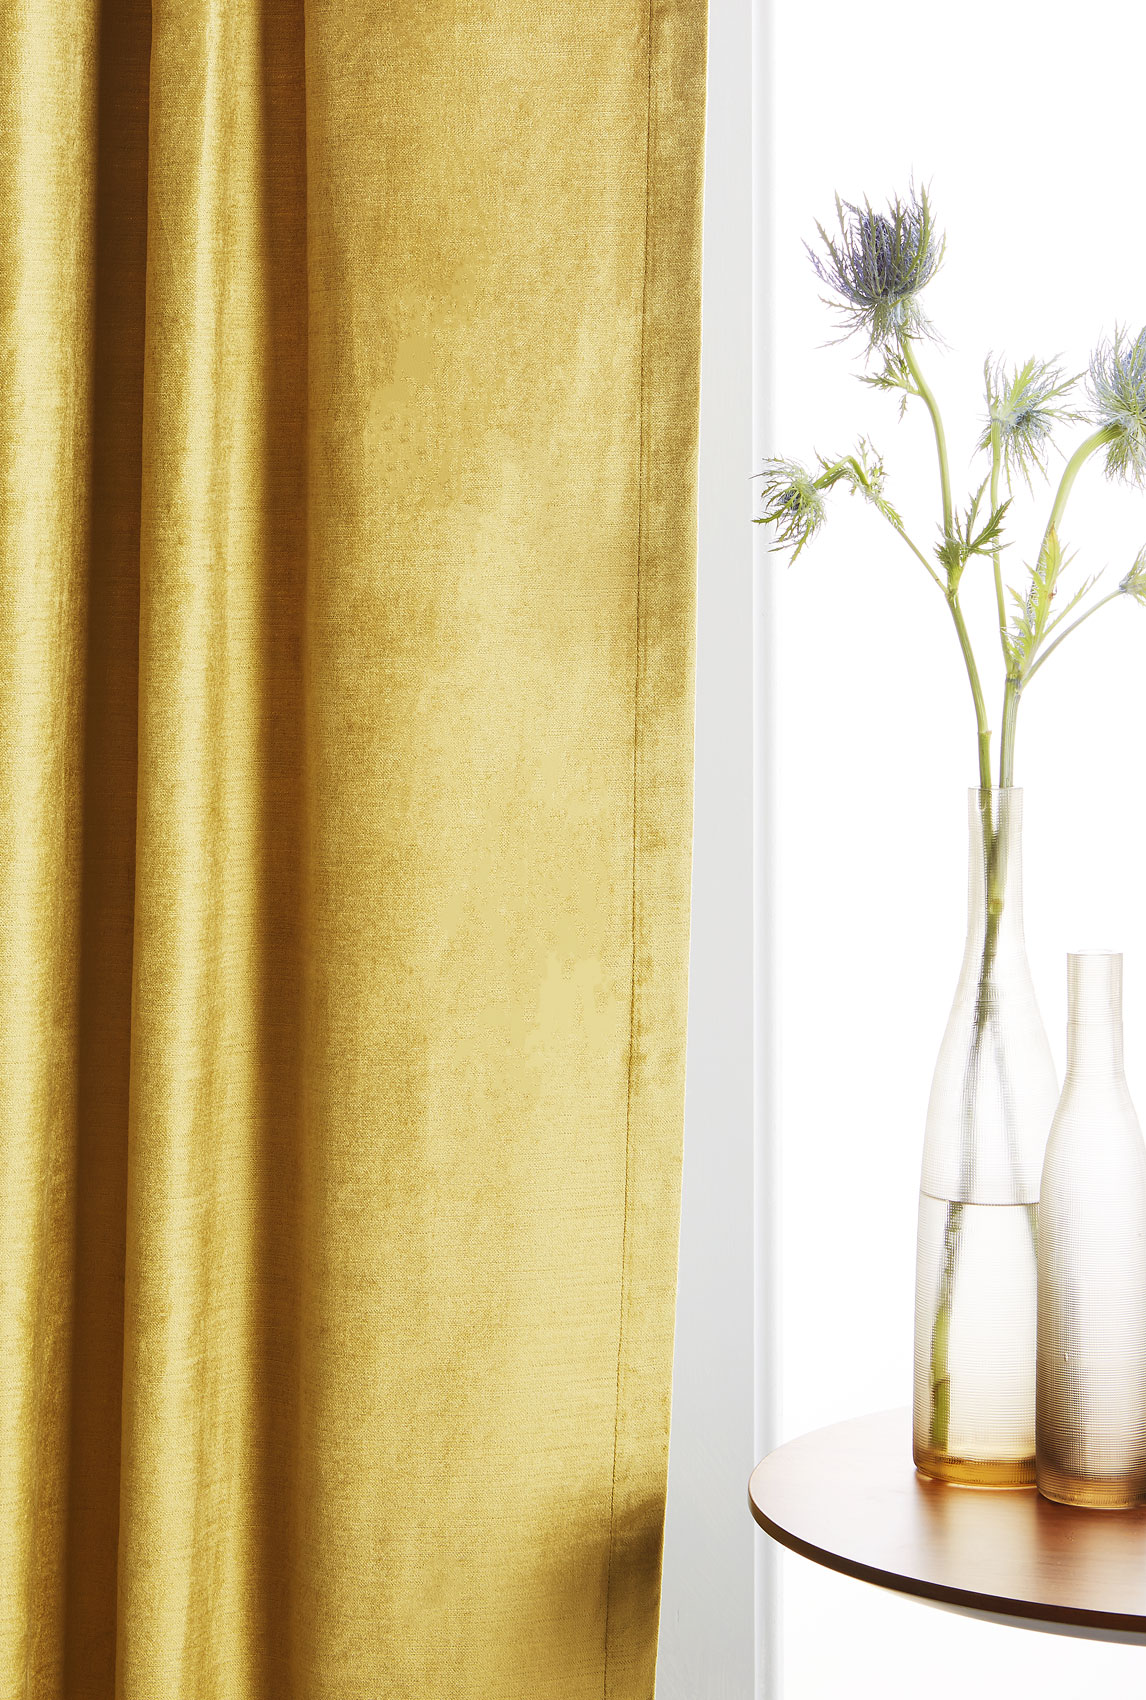 luster-velvet-curtain-wasabi-detail_ty-mecham_west-elm